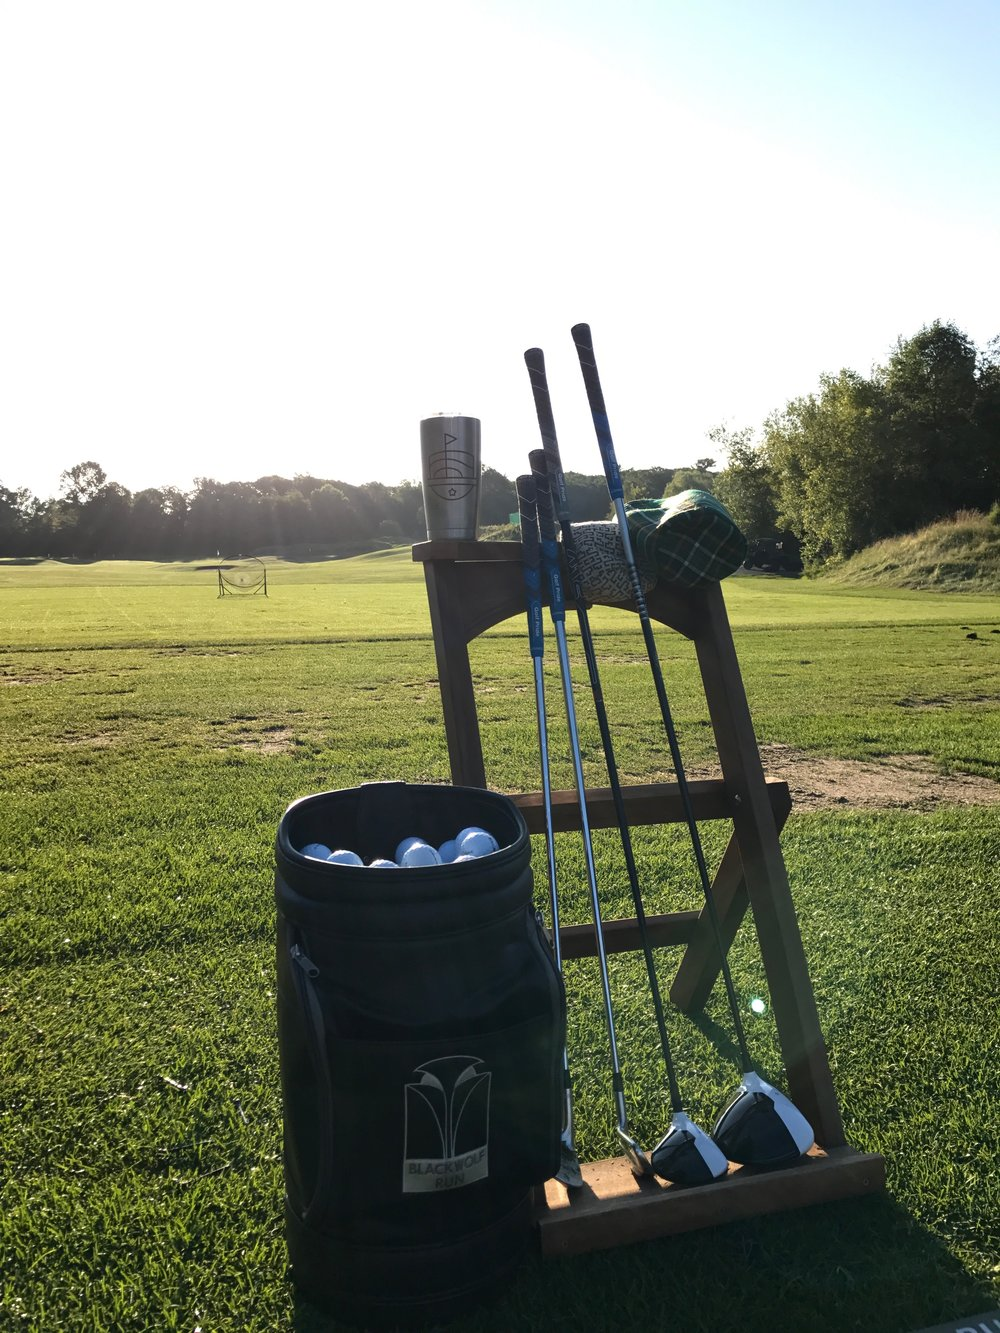 Morning on the Range